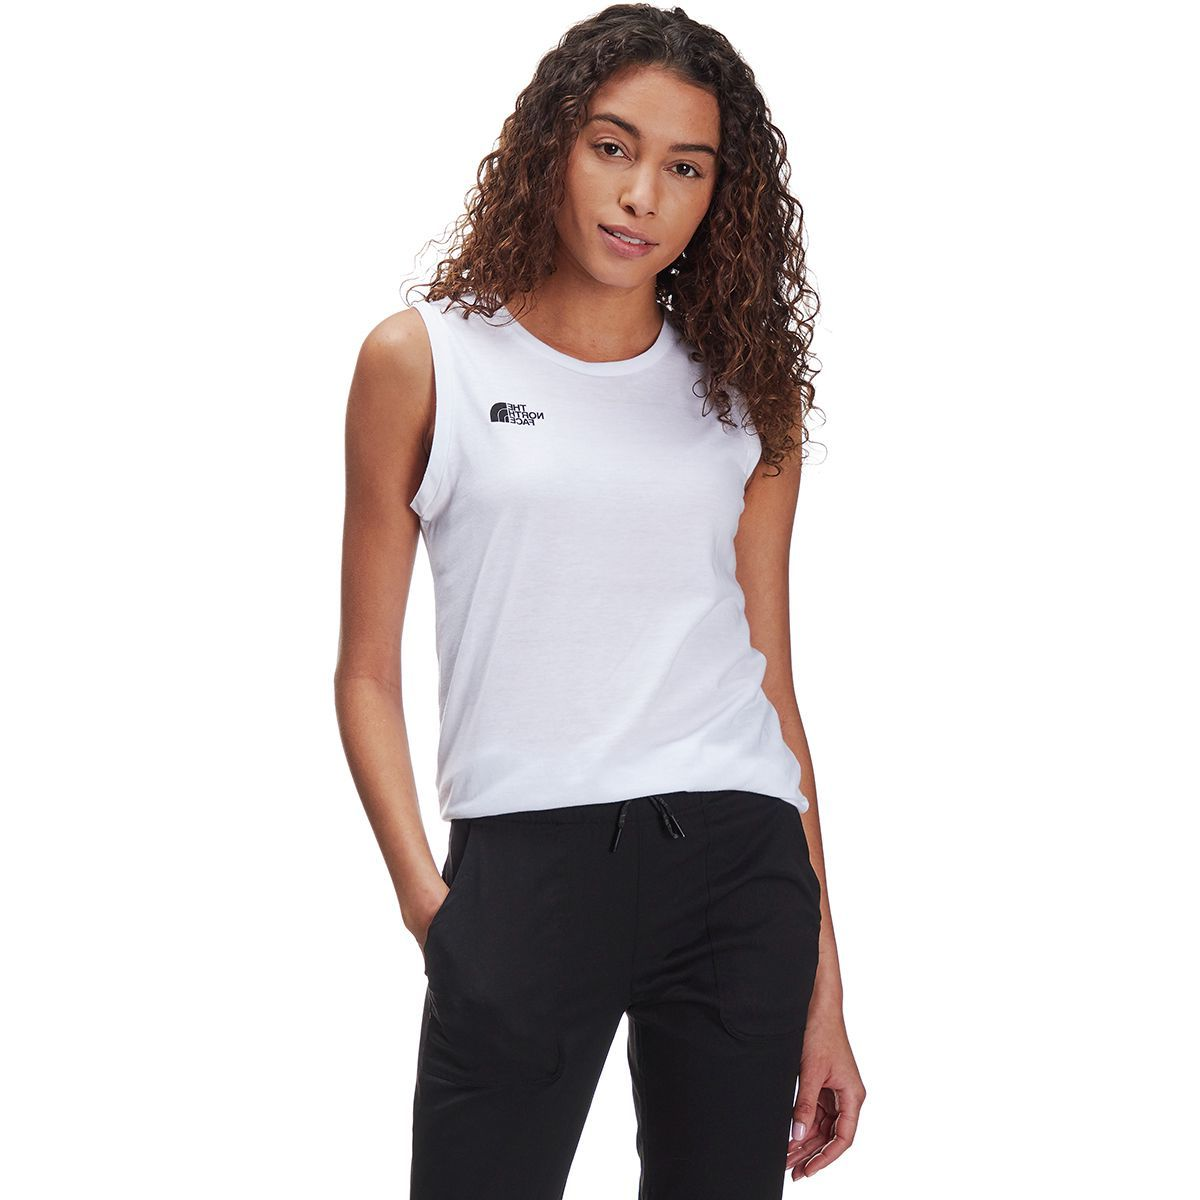 The North Face Brand Proud Muscle Tank Top - Women's